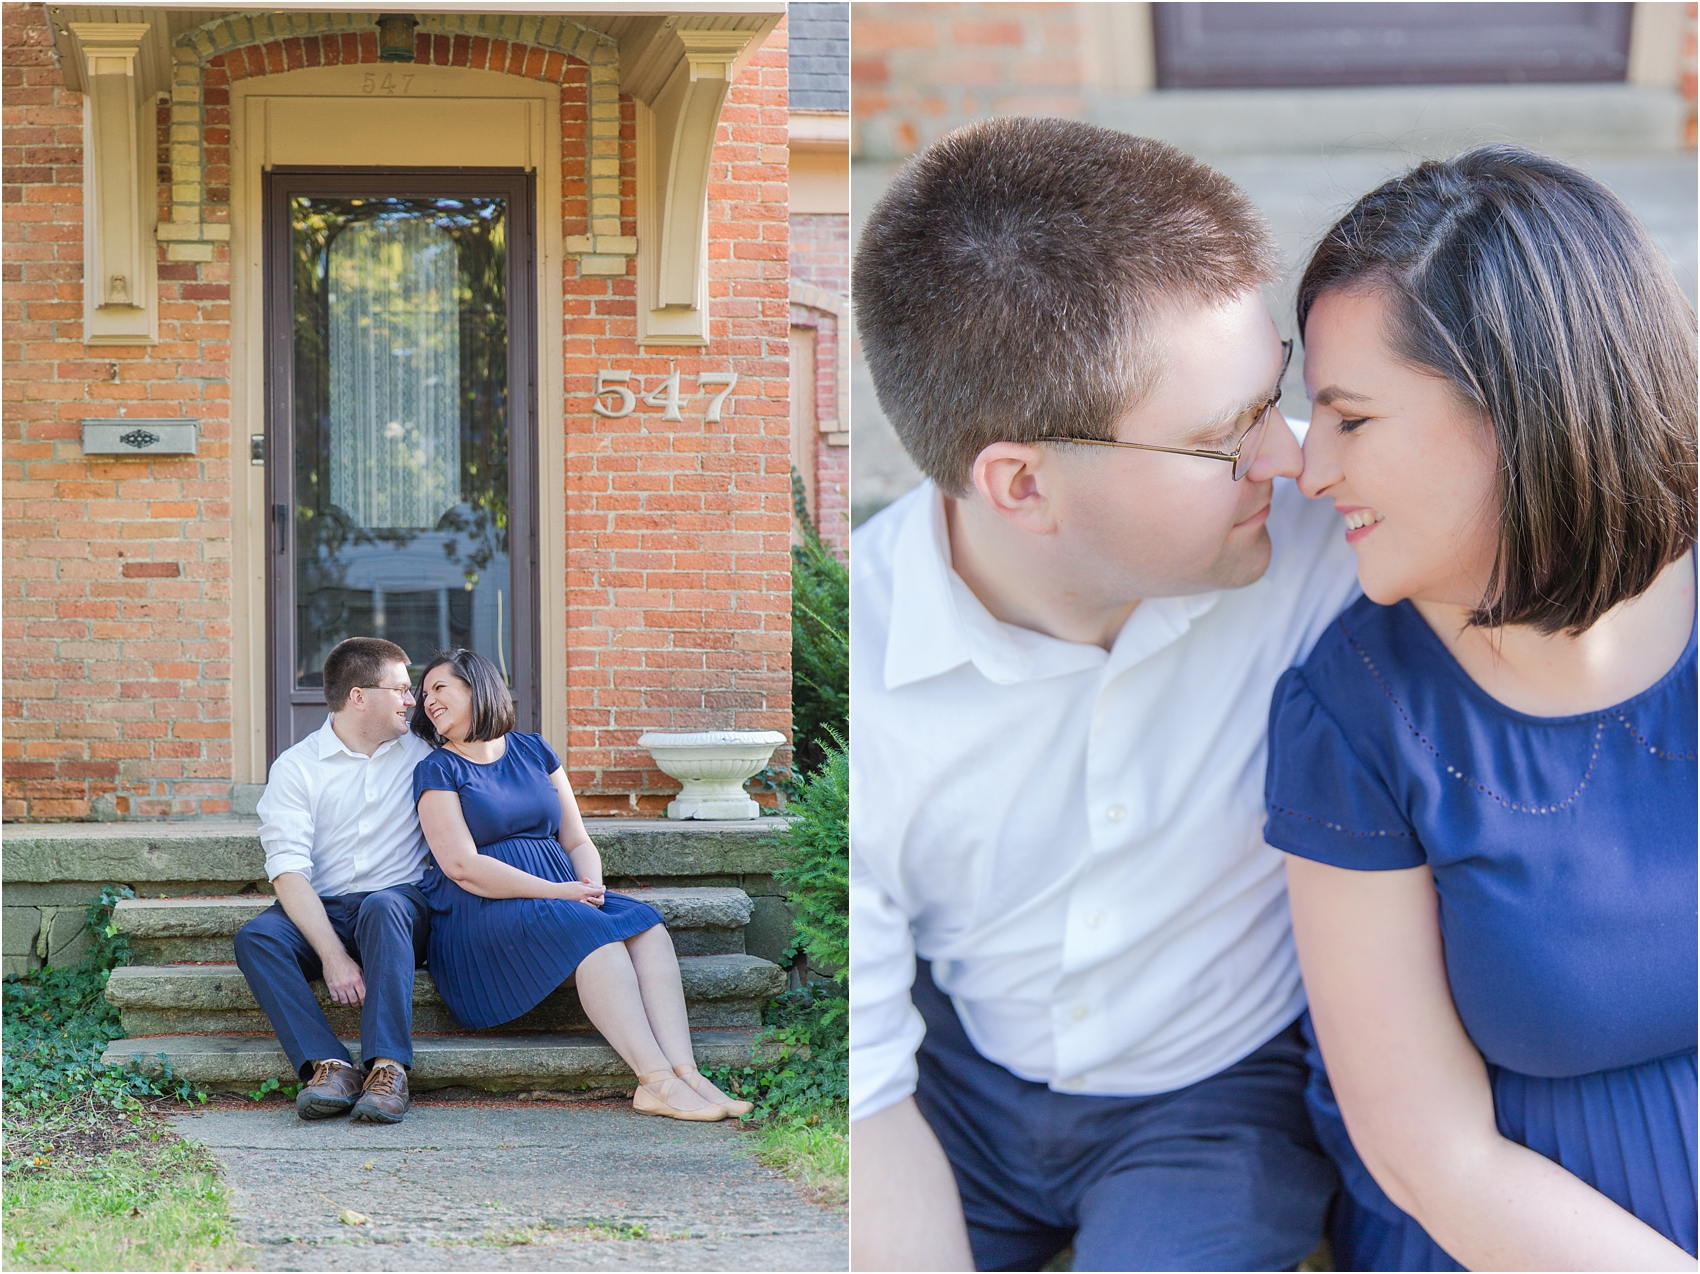 emotional-candid-romantic-engagement-photos-in-detroit-chicago-northern-michigan-by-courtney-carolyn-photography_0059.jpg